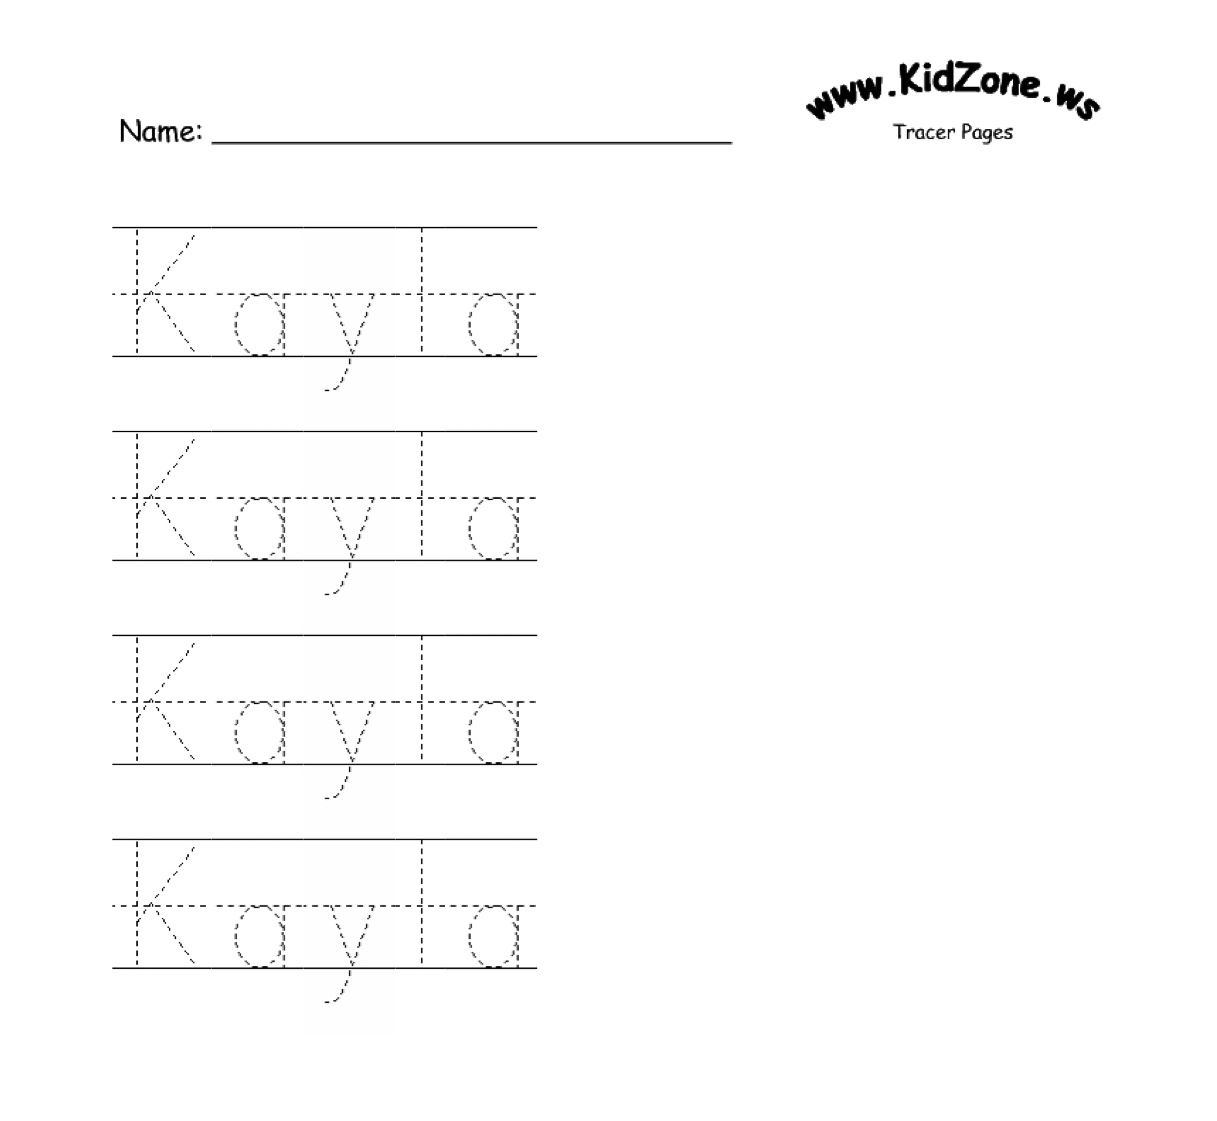 Custom Name Tracer Pages | Preschool Writing, Name Tracing for Letter Tracing Worksheet Creator